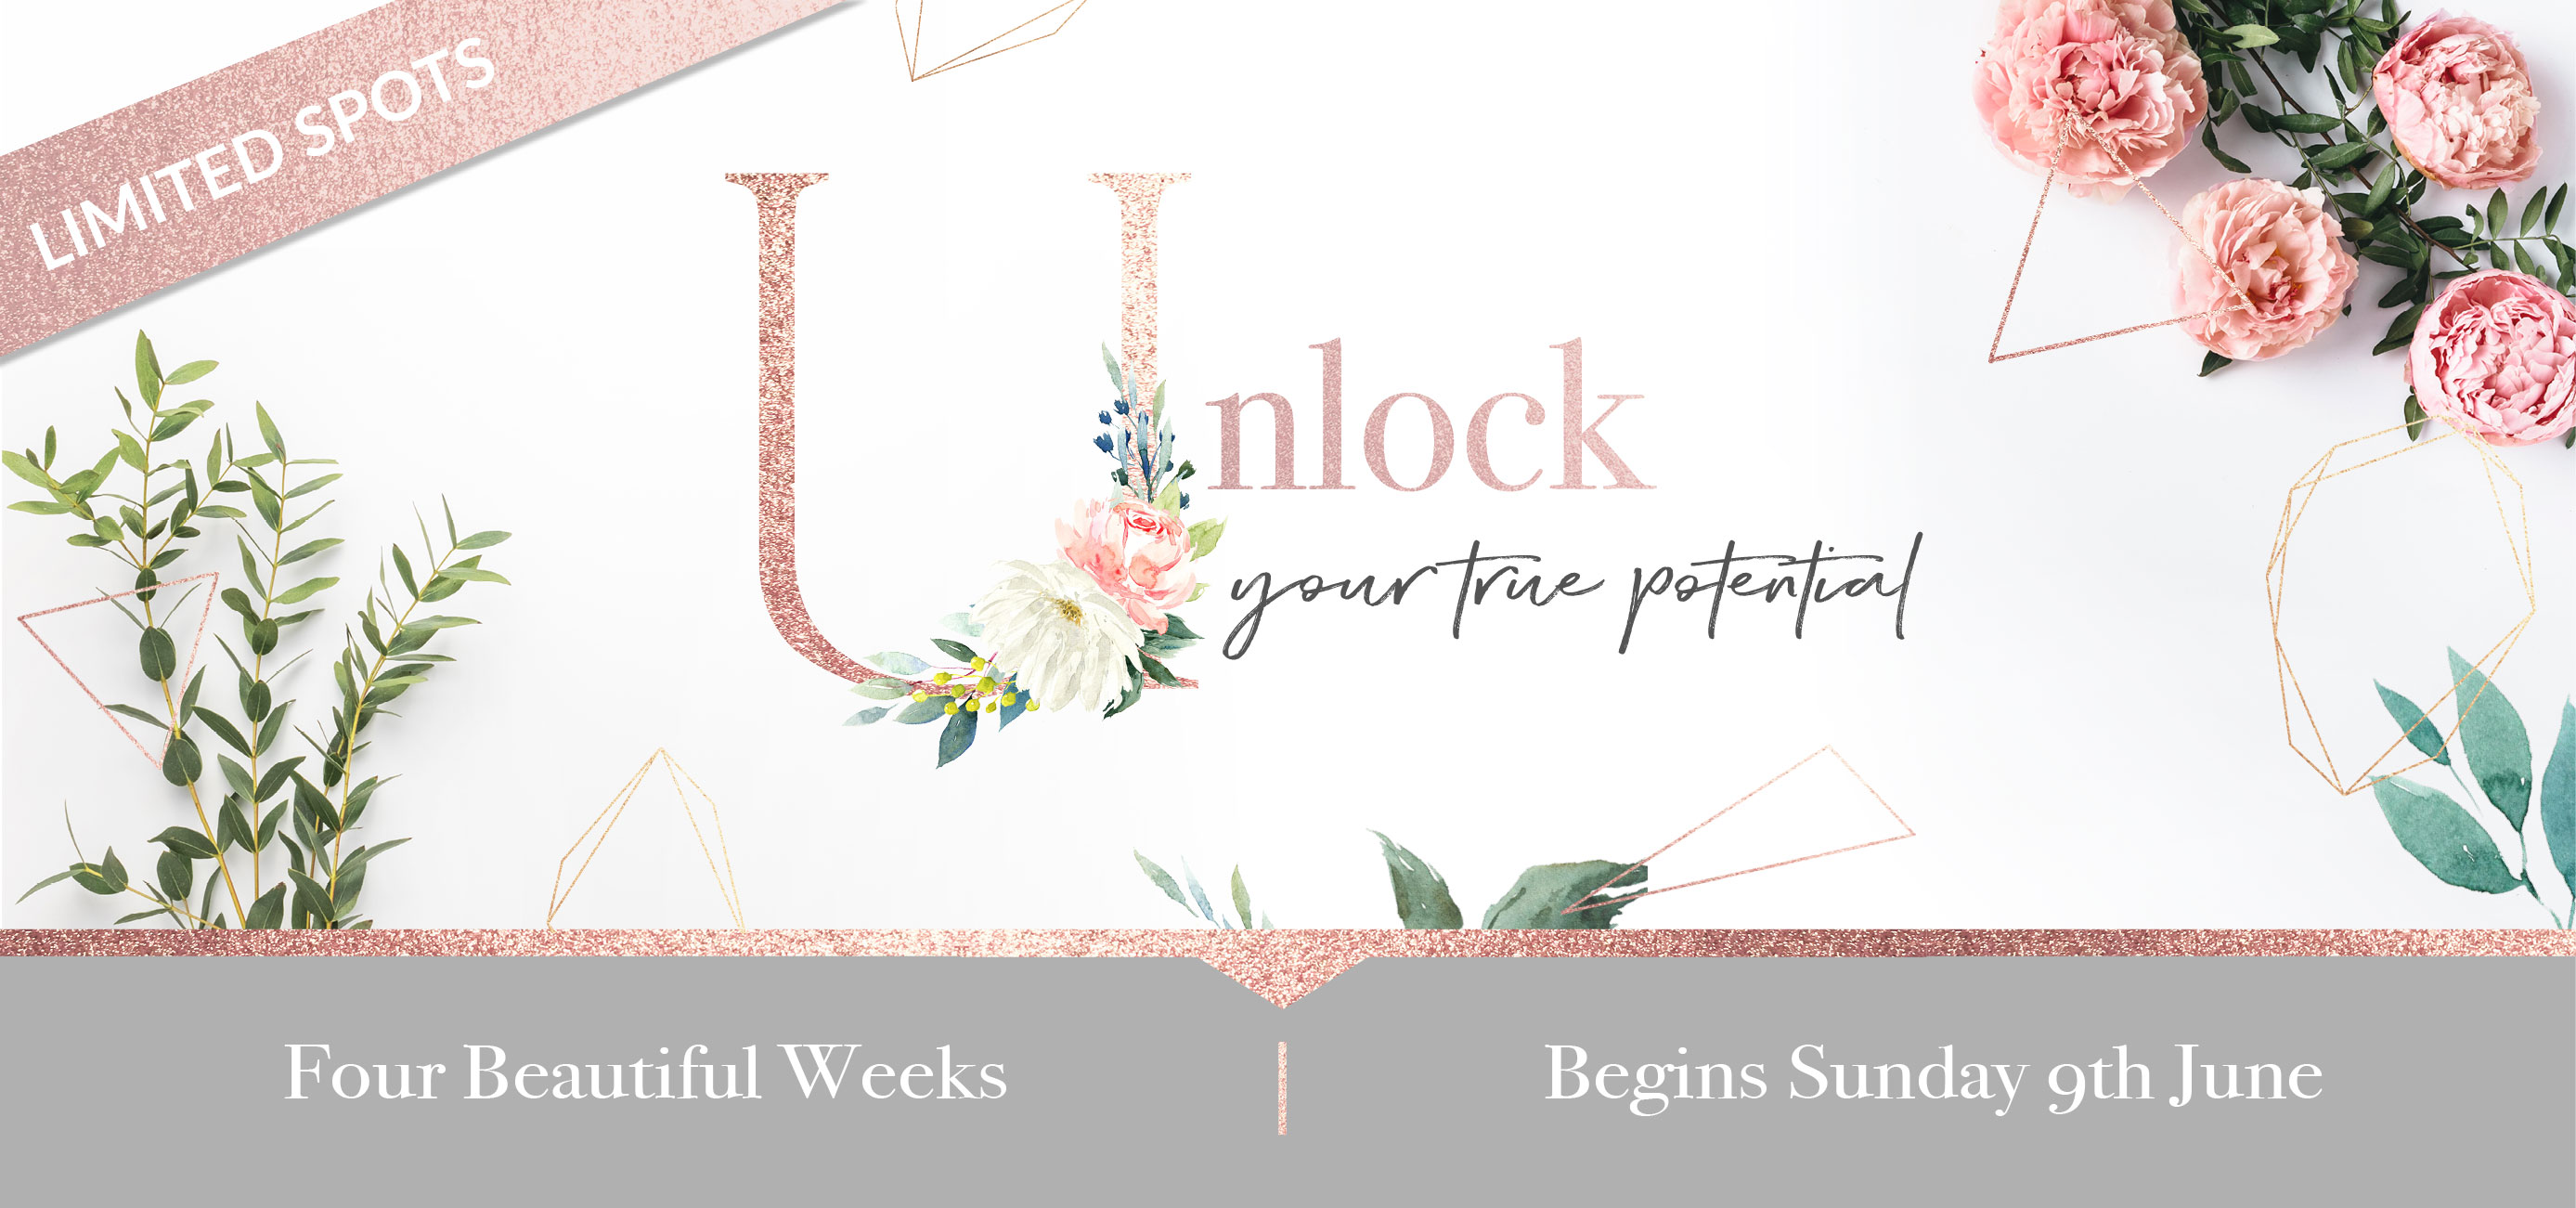 unlock-your-true-potential-cart-open-banner